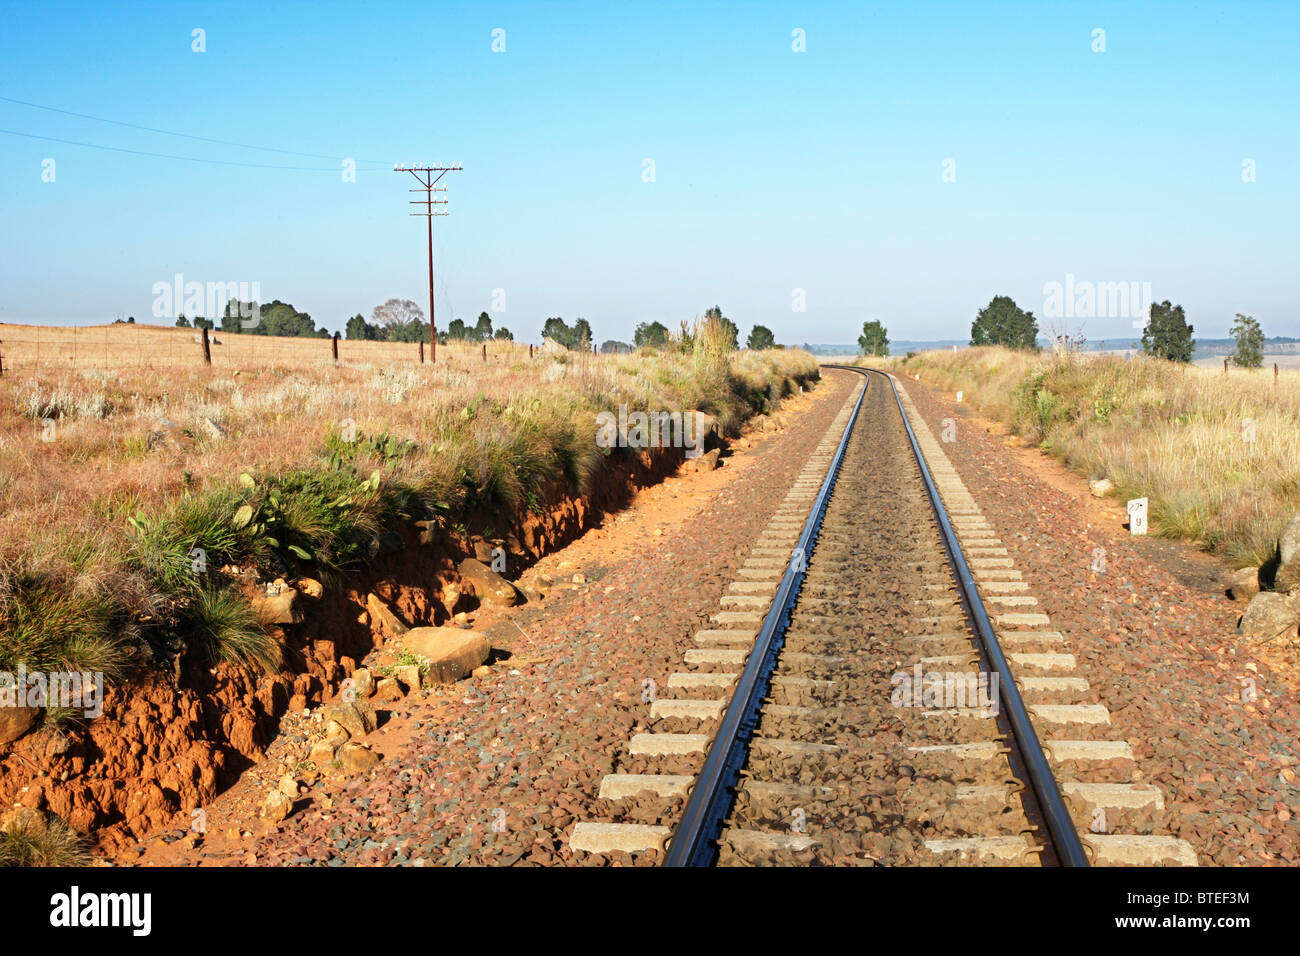 Railway line disappearing into the distance - Stock Image